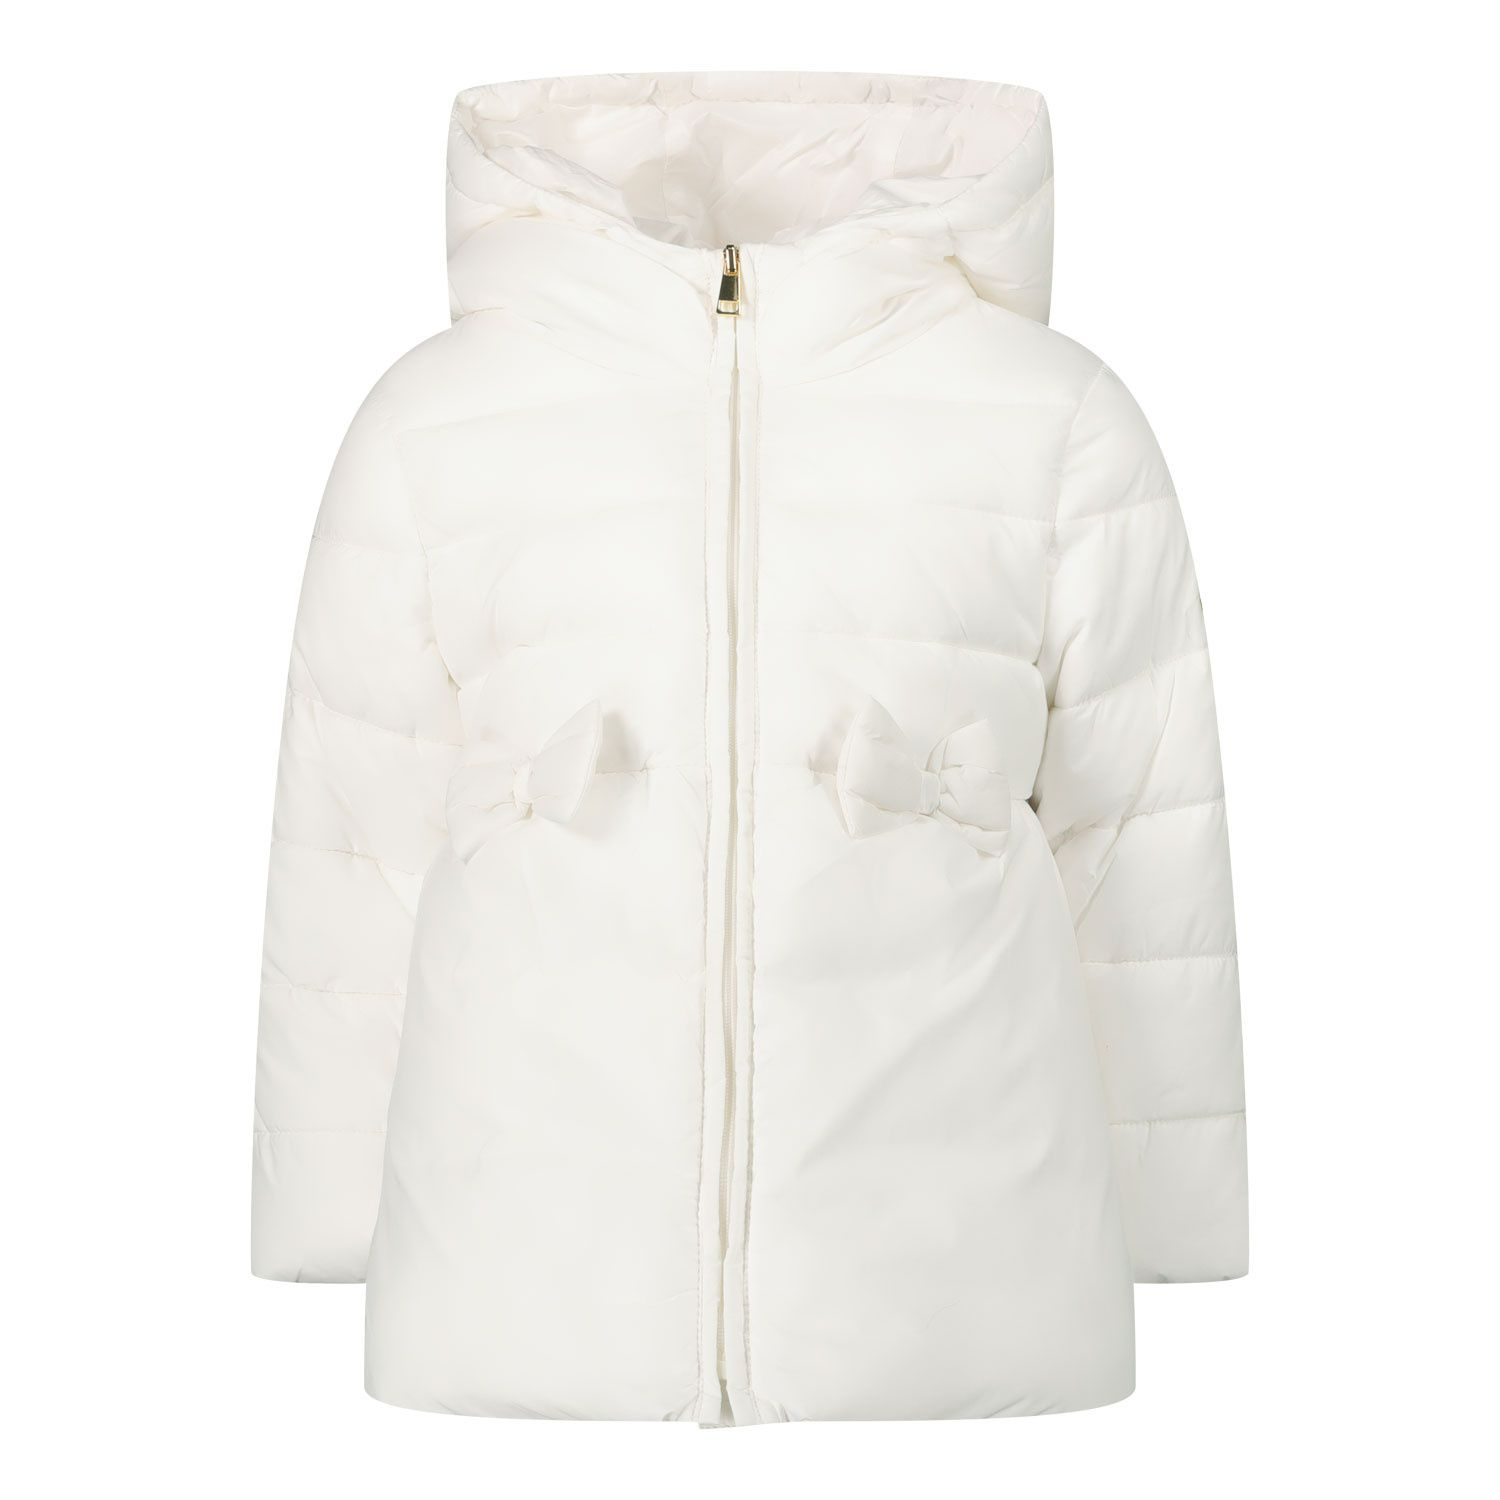 Picture of Liu Jo HF0003 baby coat off white